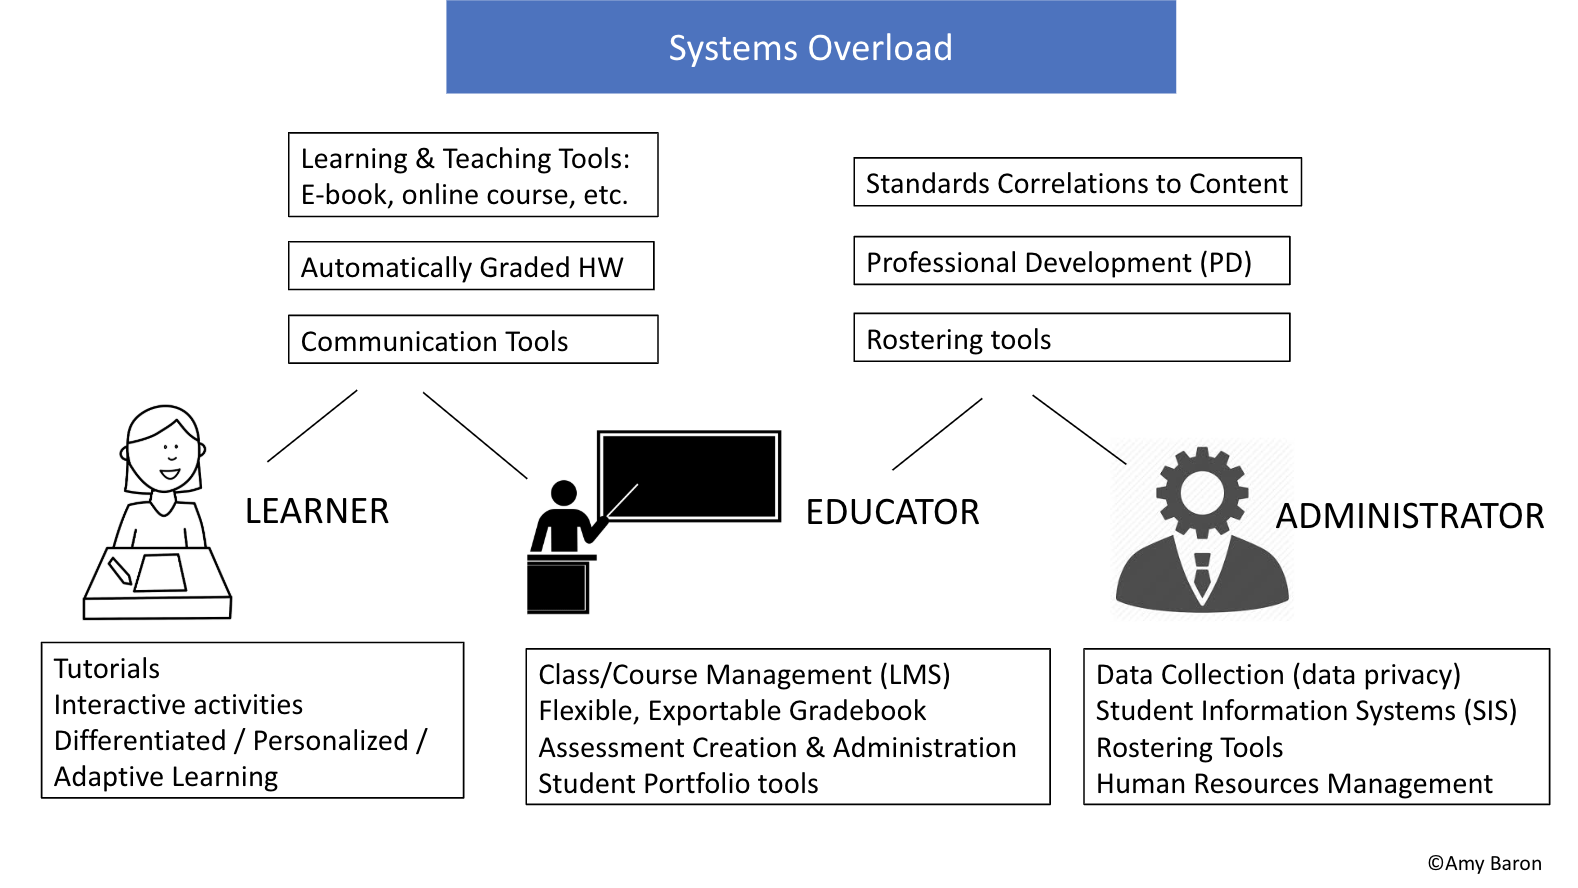 How the Learner (cartoon person seated at desk which has a paper and pencil on it), Educator (stick-figure behind podium pointing at blackboard) and Administrator (cog for head on business suit torso) connect through interoperability.